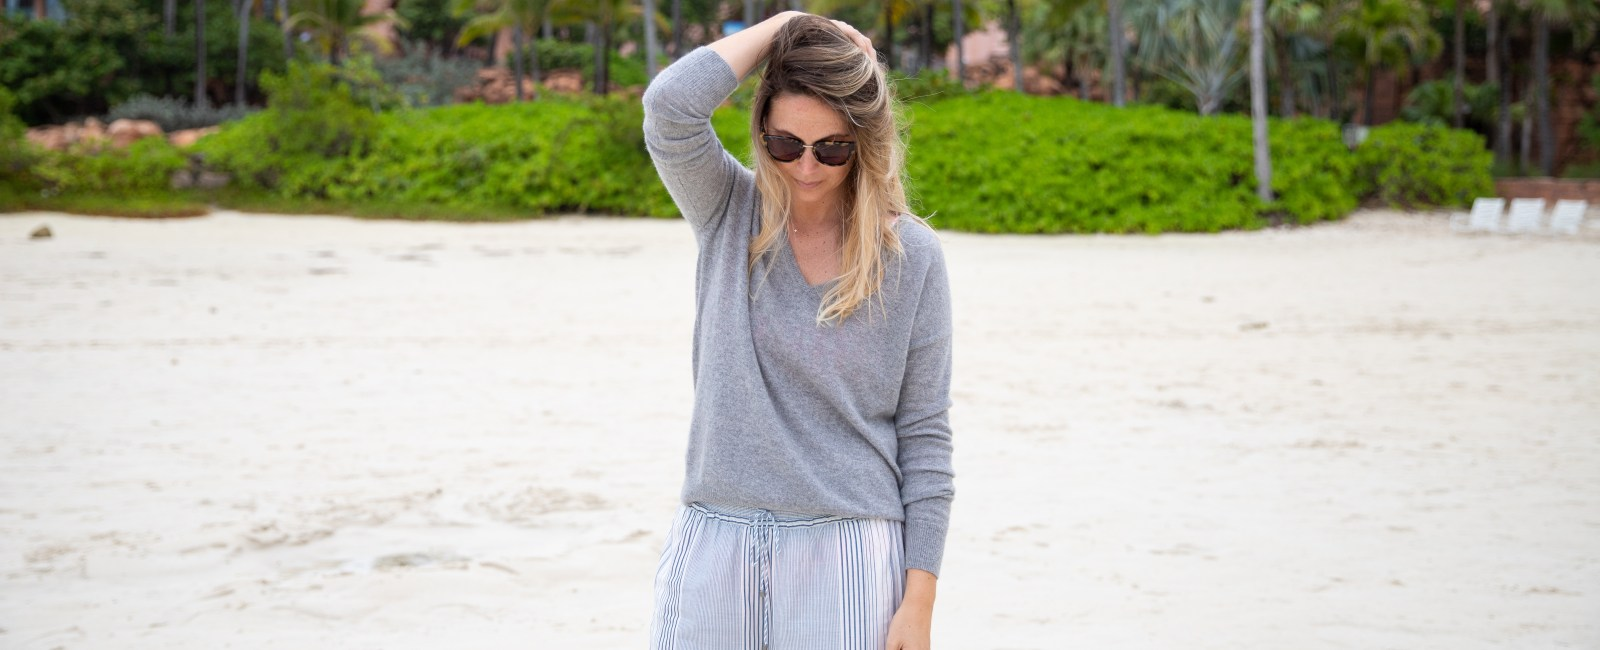 For Those Chilly Beach Days